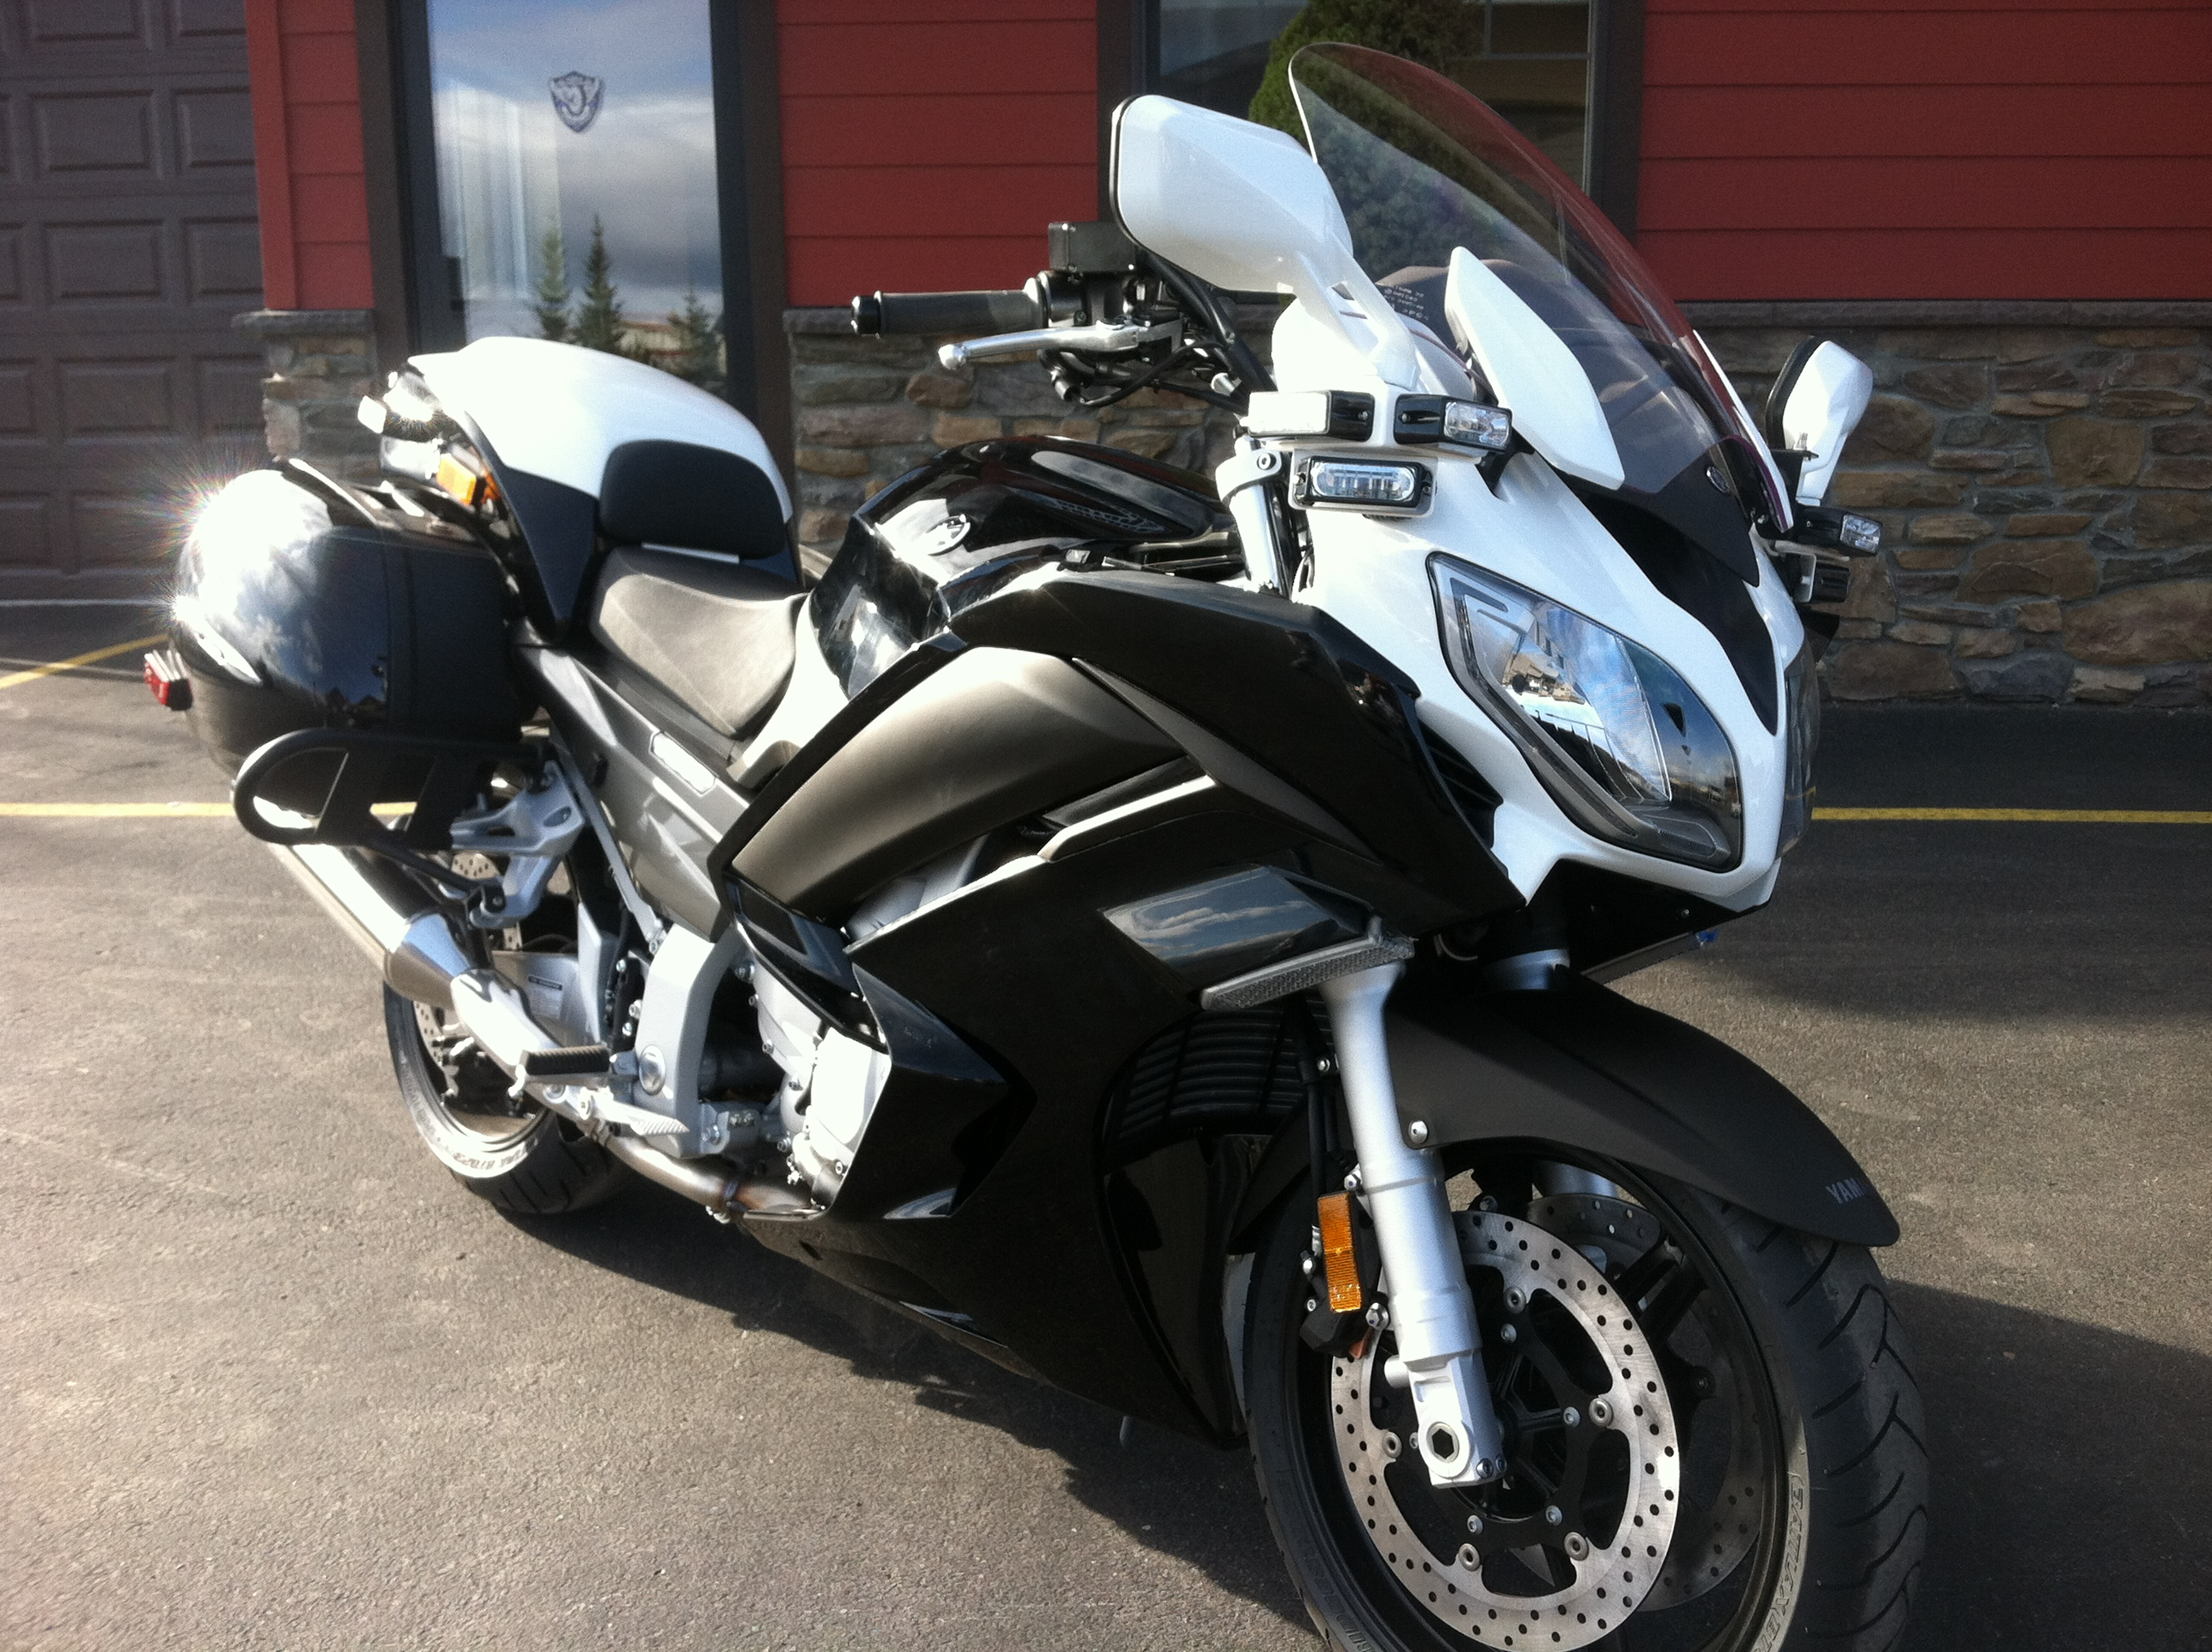 Yamaha FJR 1300 AS 2008 images #155626